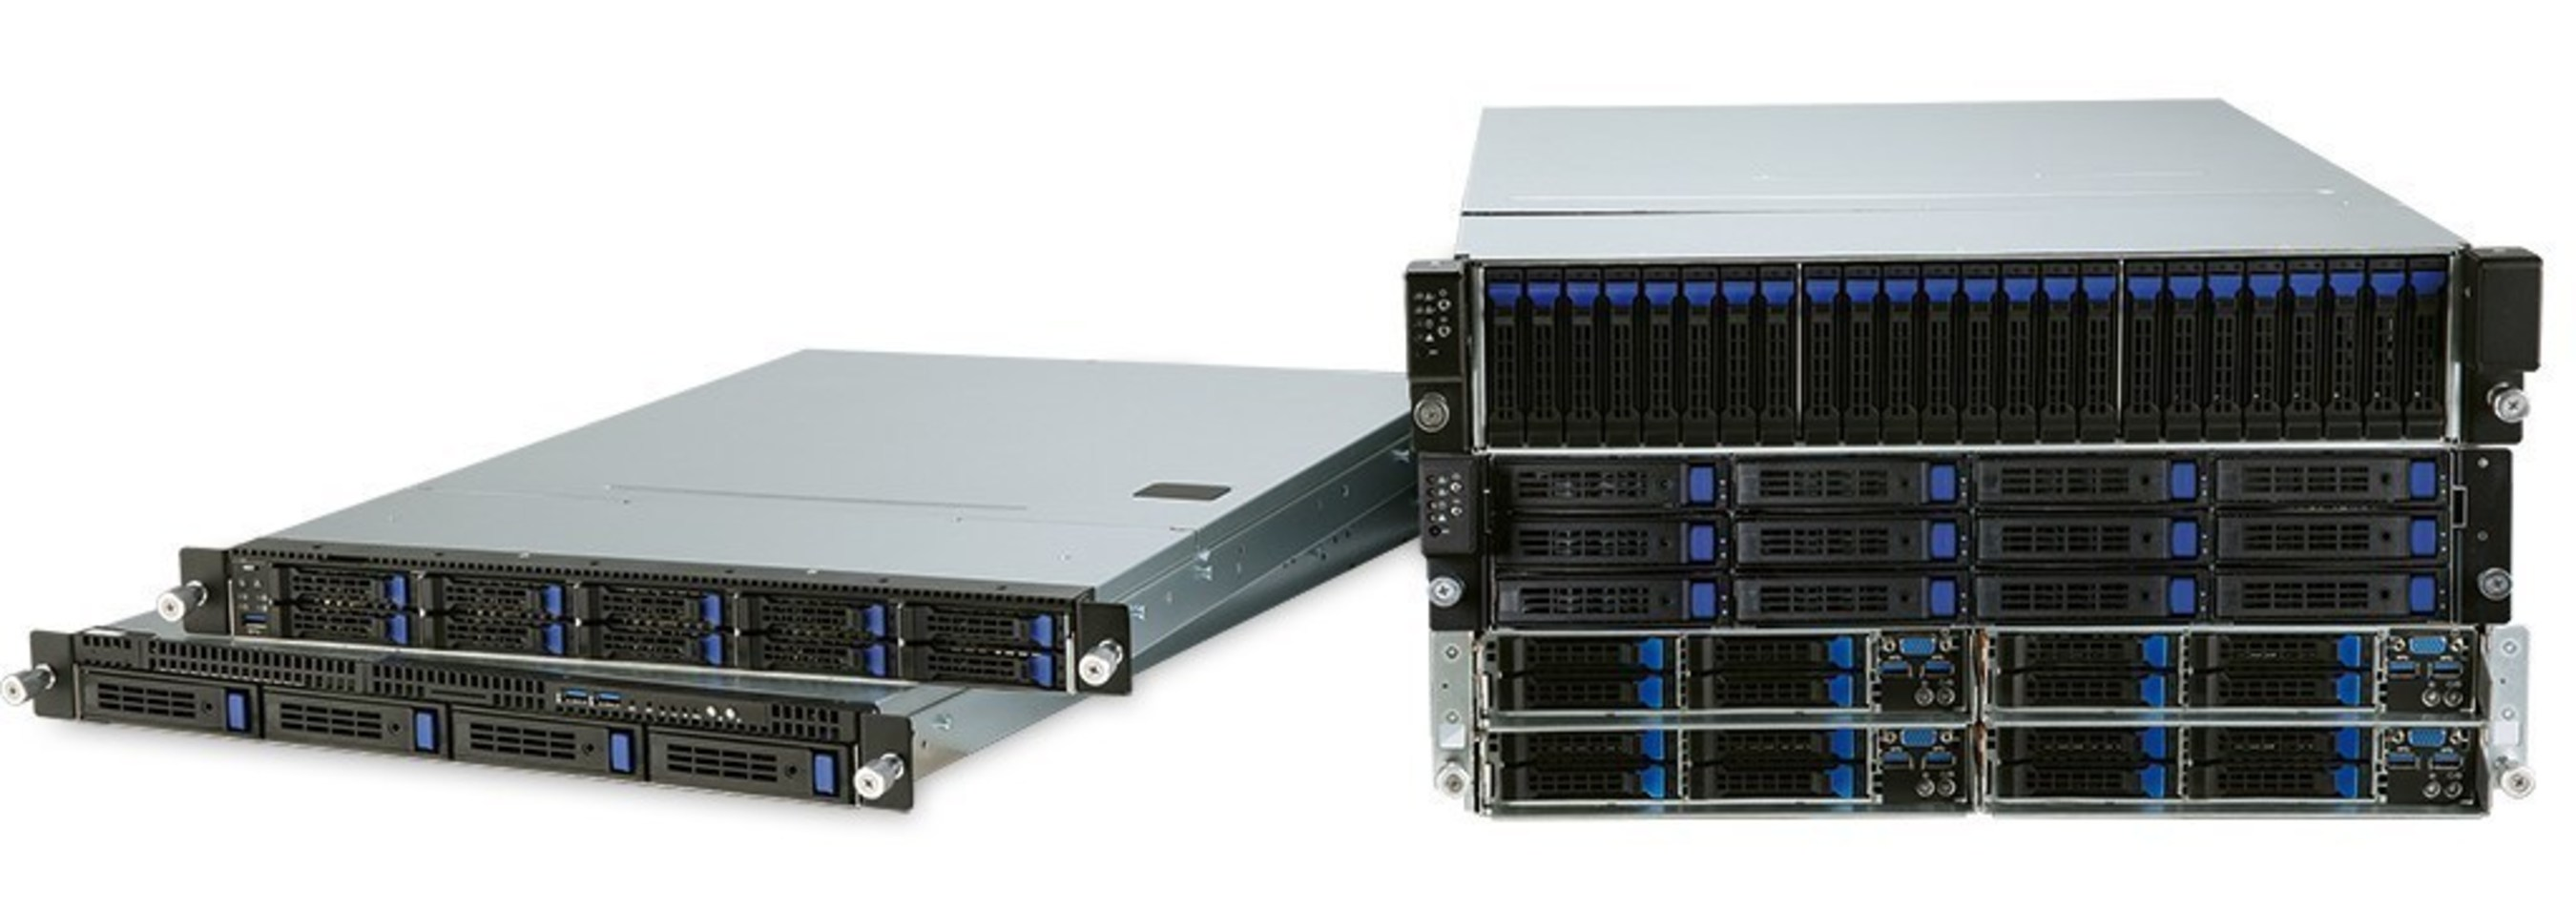 GIGABYTE Announces Availability and Production Shipments of Extensive Cavium ThunderX-based Server Portfolio